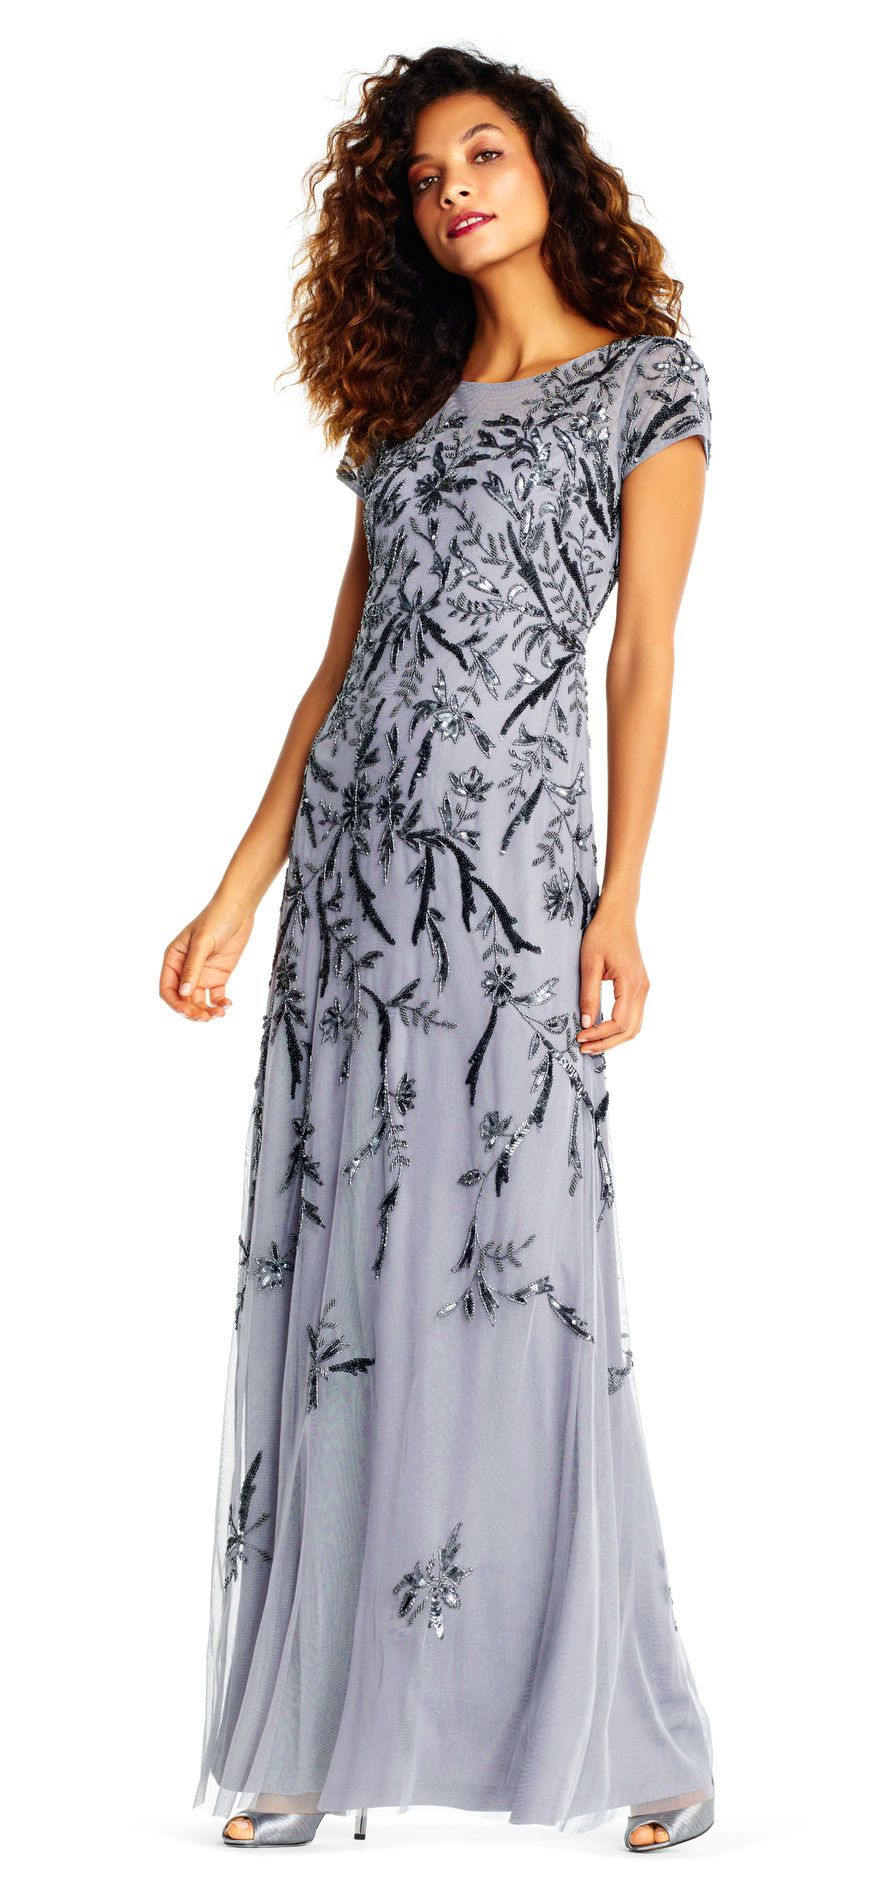 Adrianna Papell | Short Sleeve Gown with Sequin Beaded Vines ...